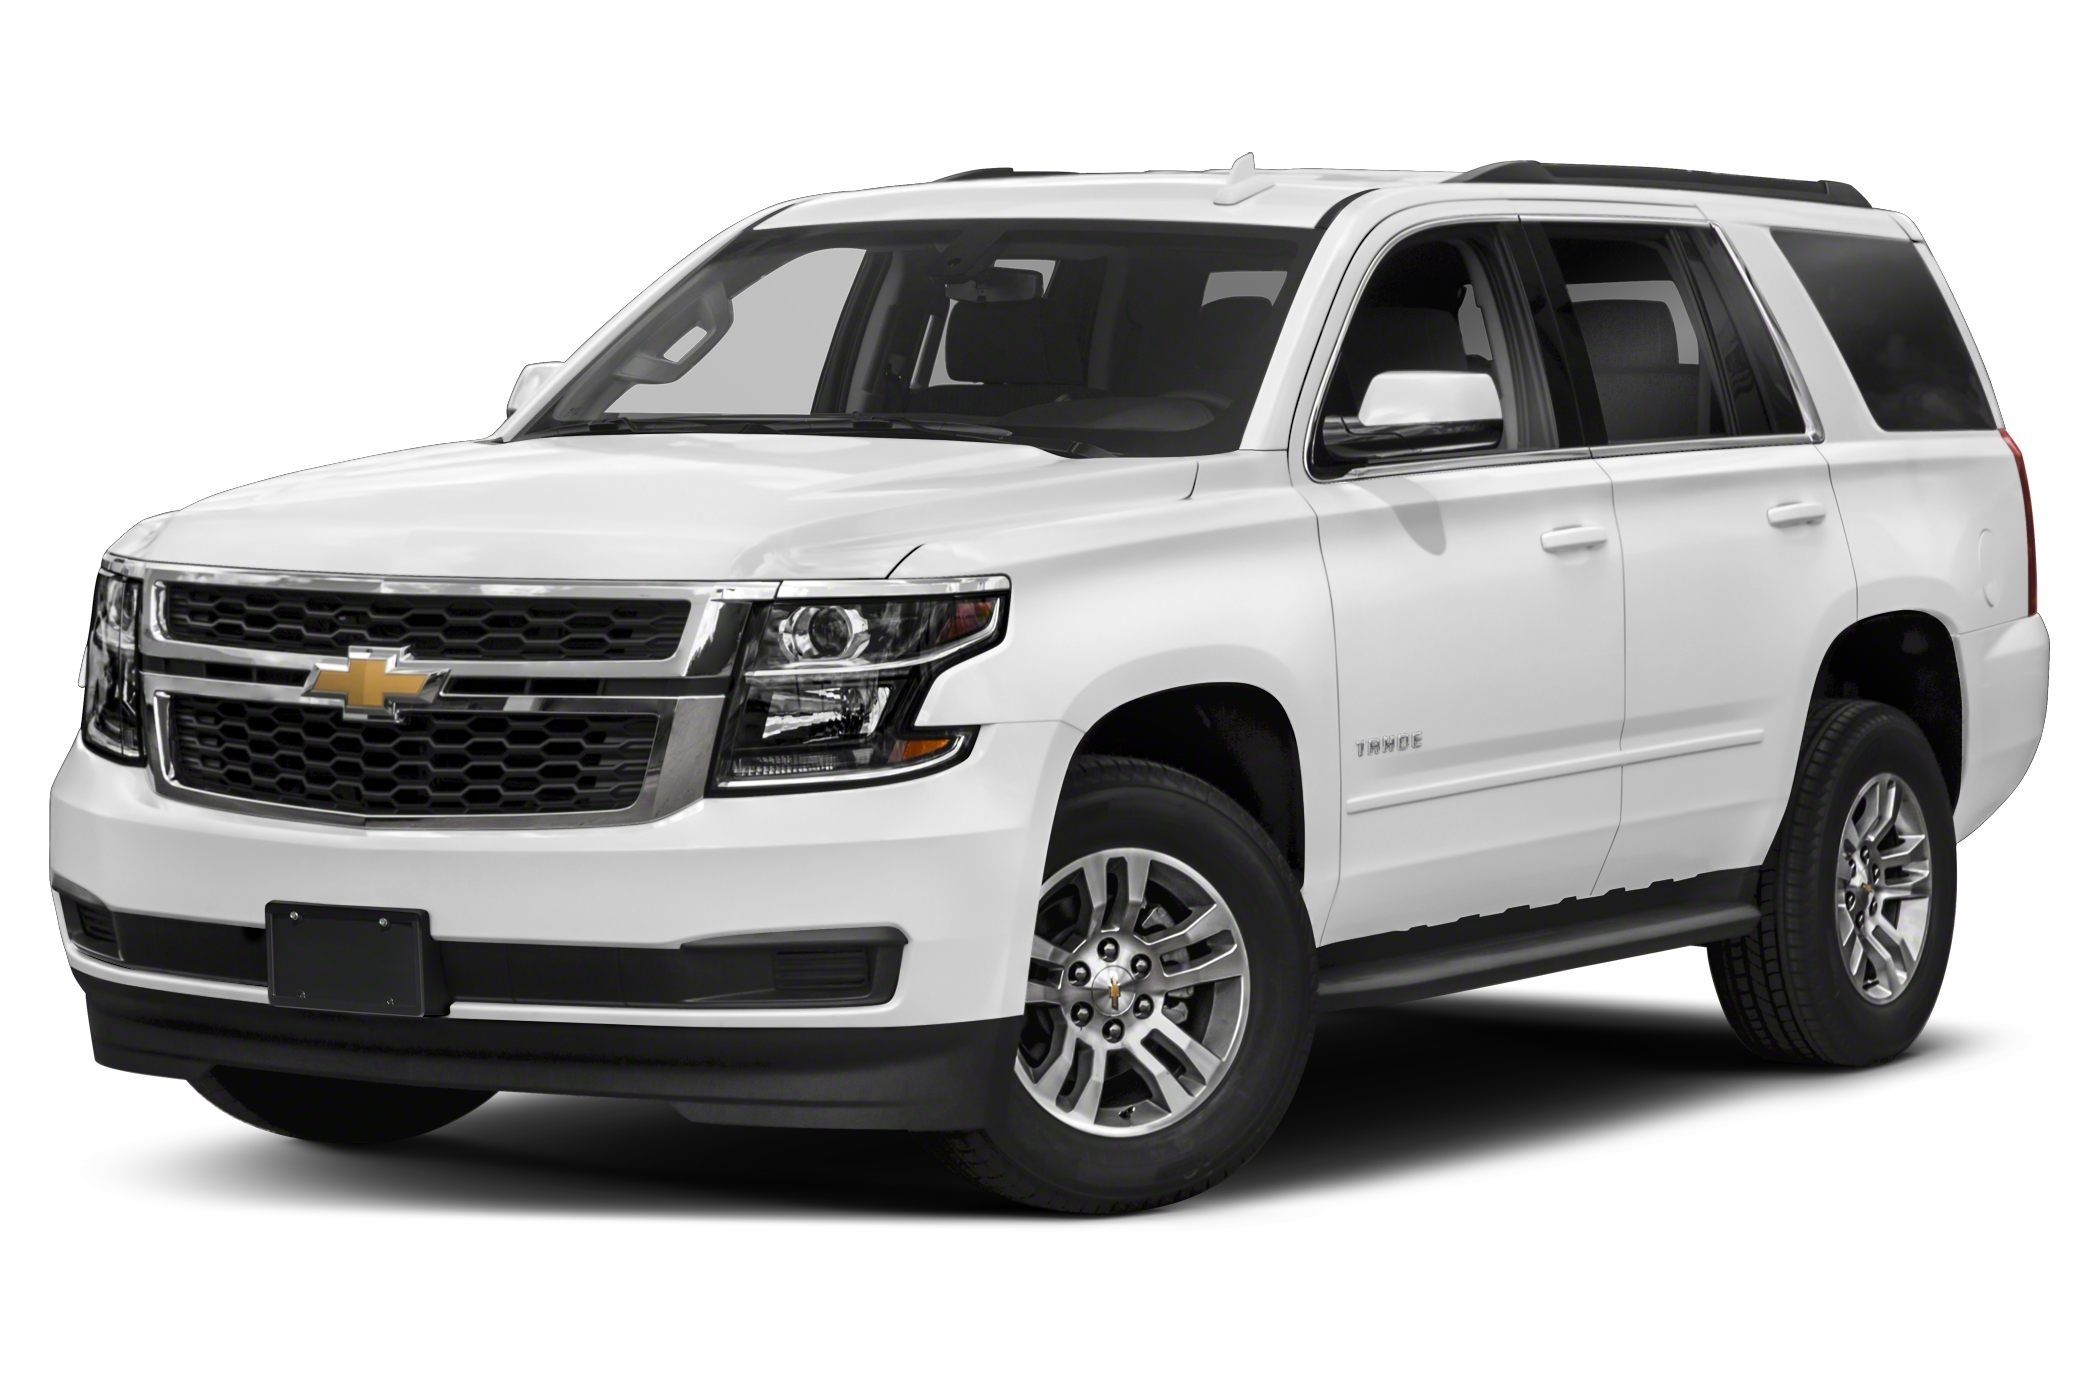 2020 Chevy Tahoe Concept Engine Specs Chevrolet Tahoe Chevy Tahoe Ltz Chevy